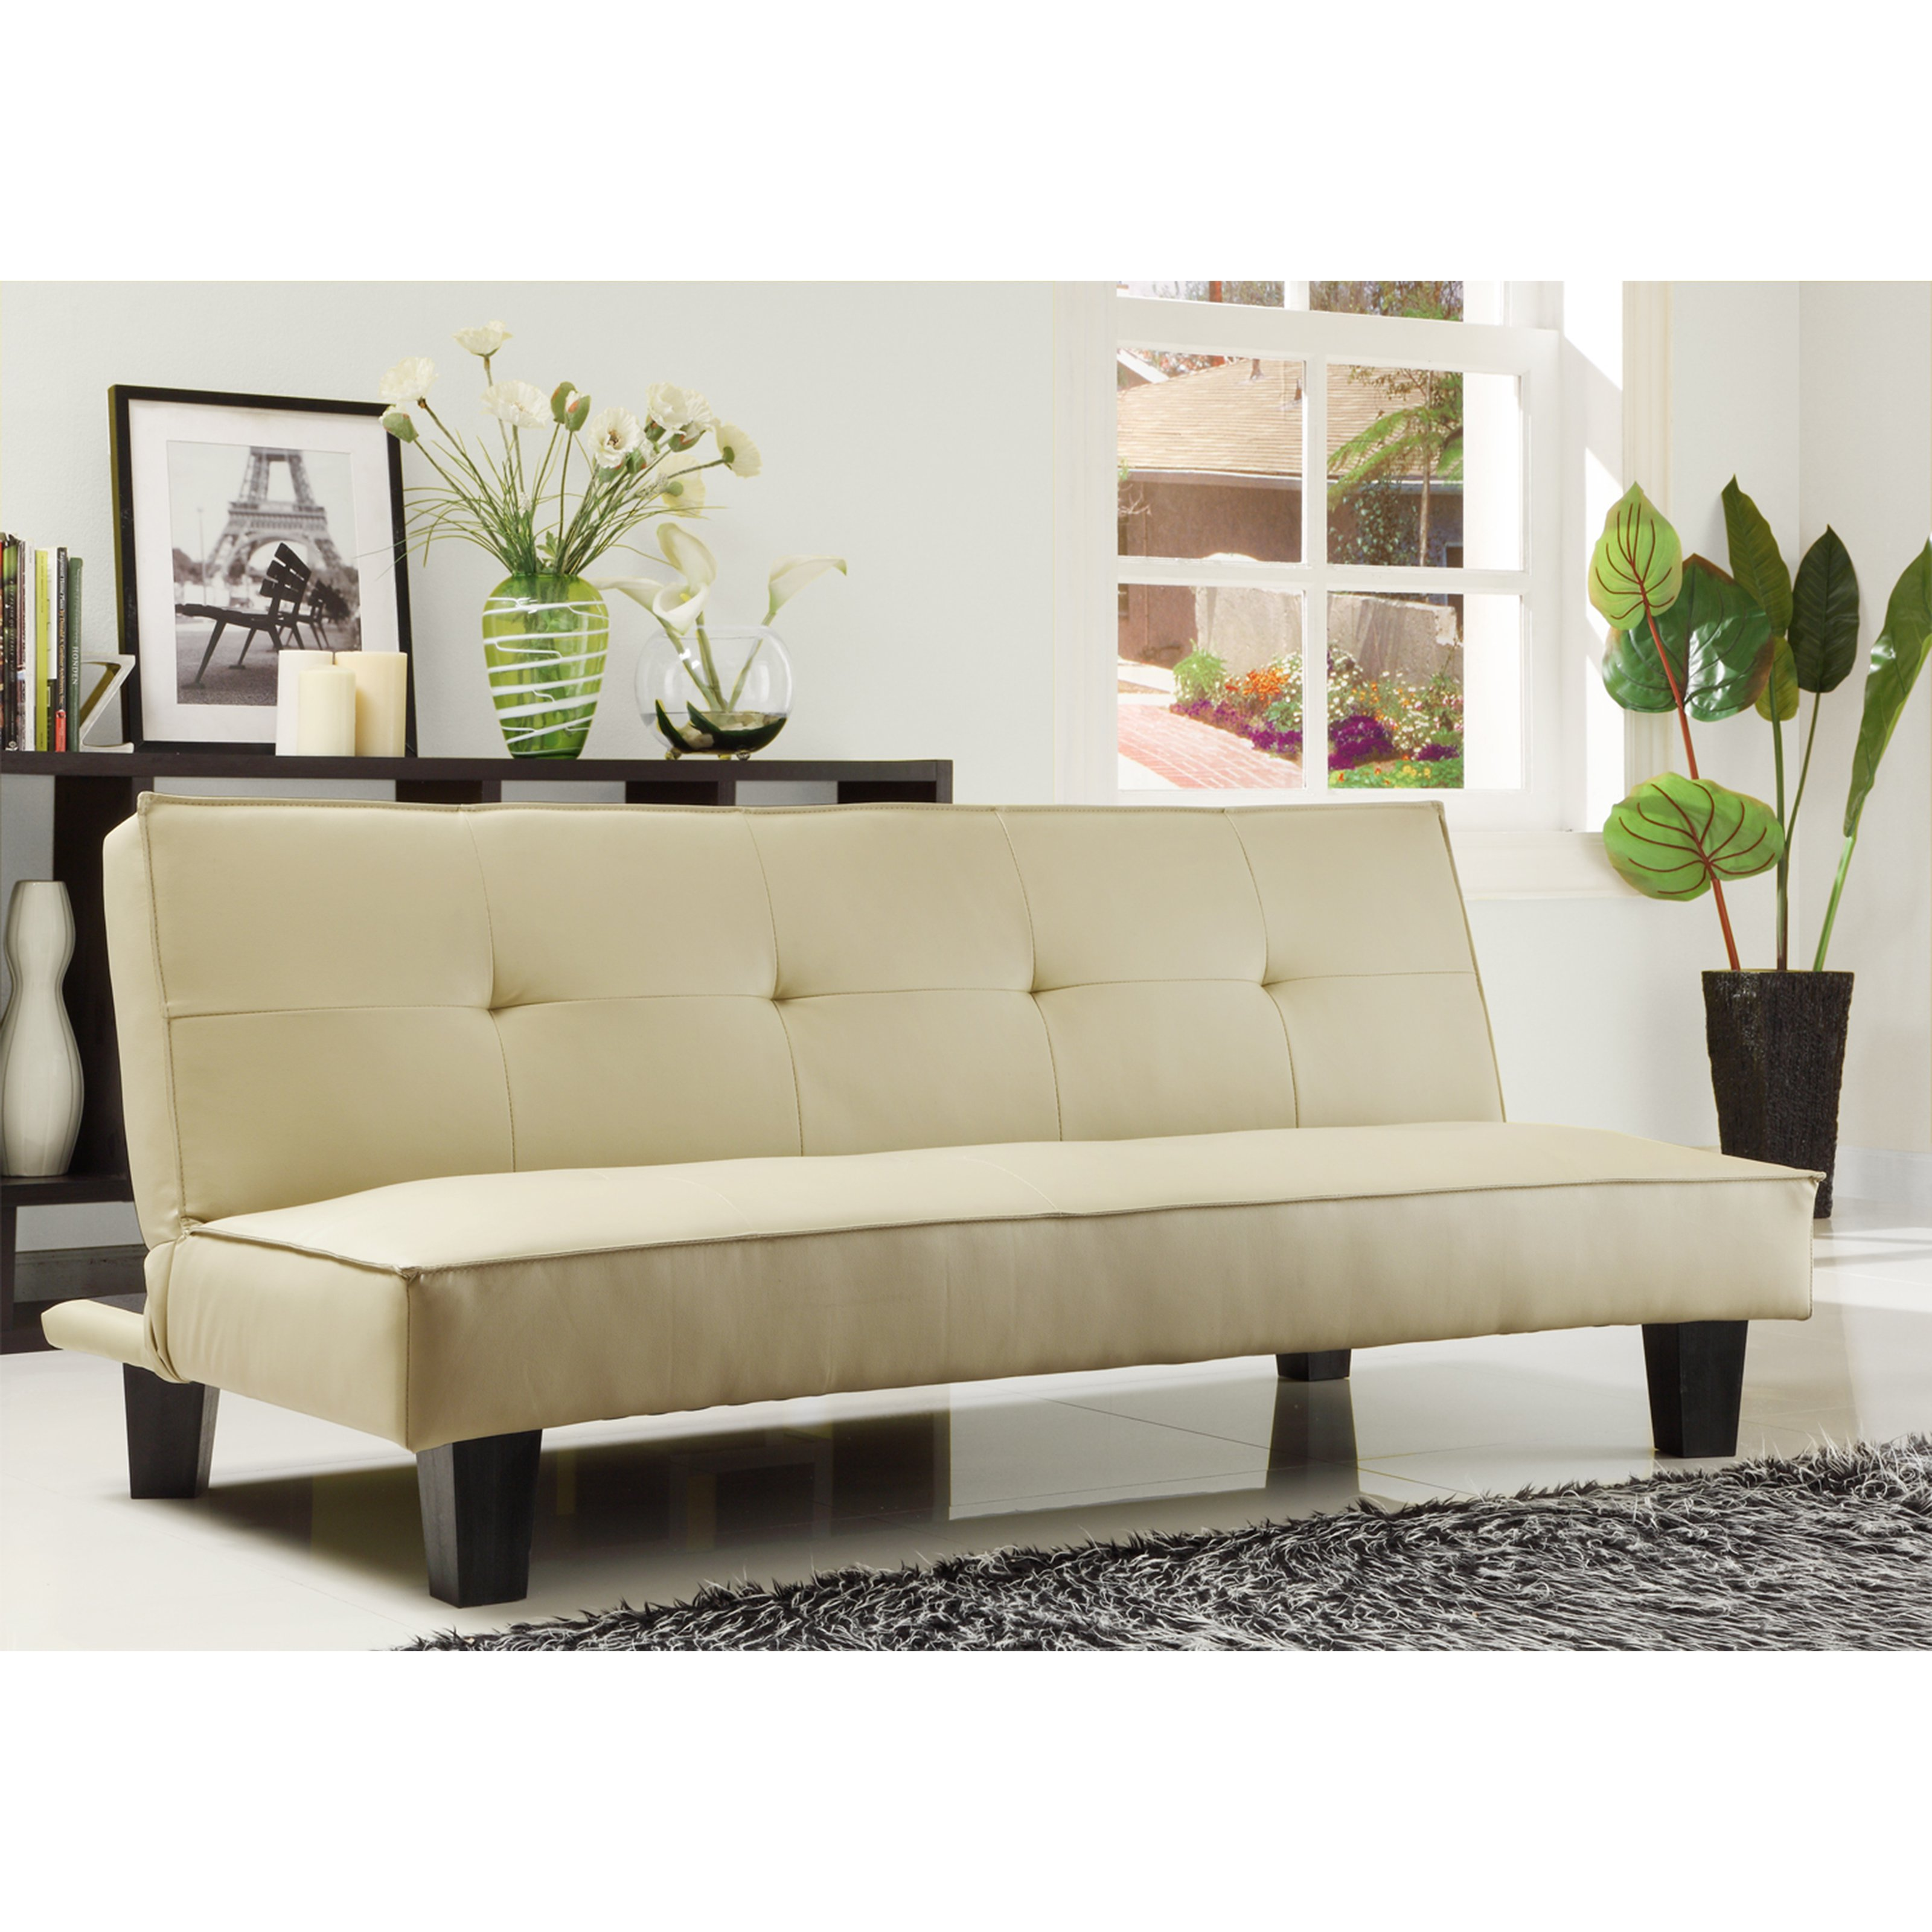 darrin leather sofa reviews full size bi fold futon bed weston home reclining loveseat with console